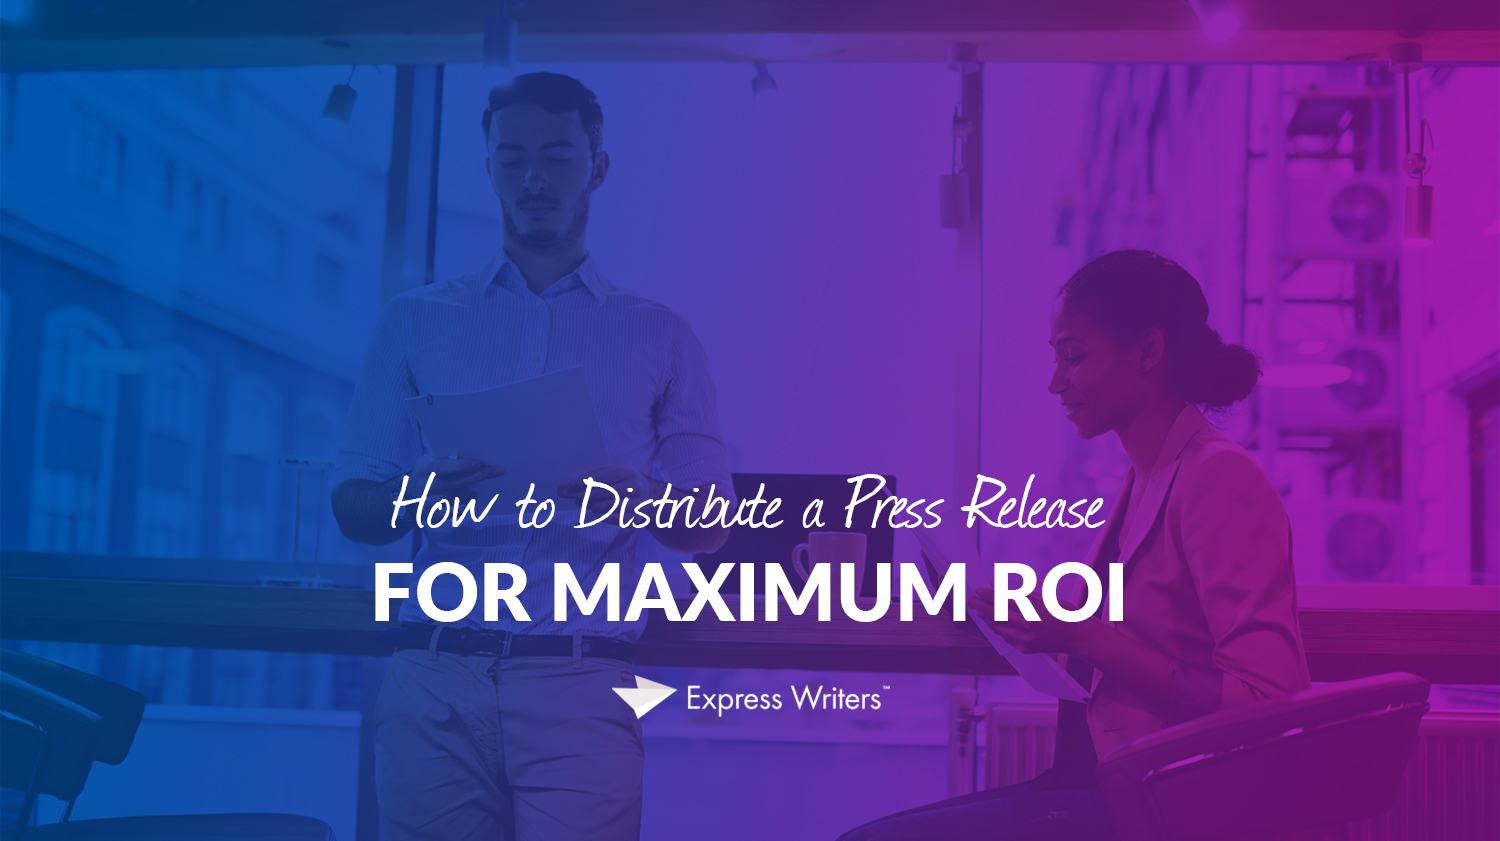 How to release and distribute a press release